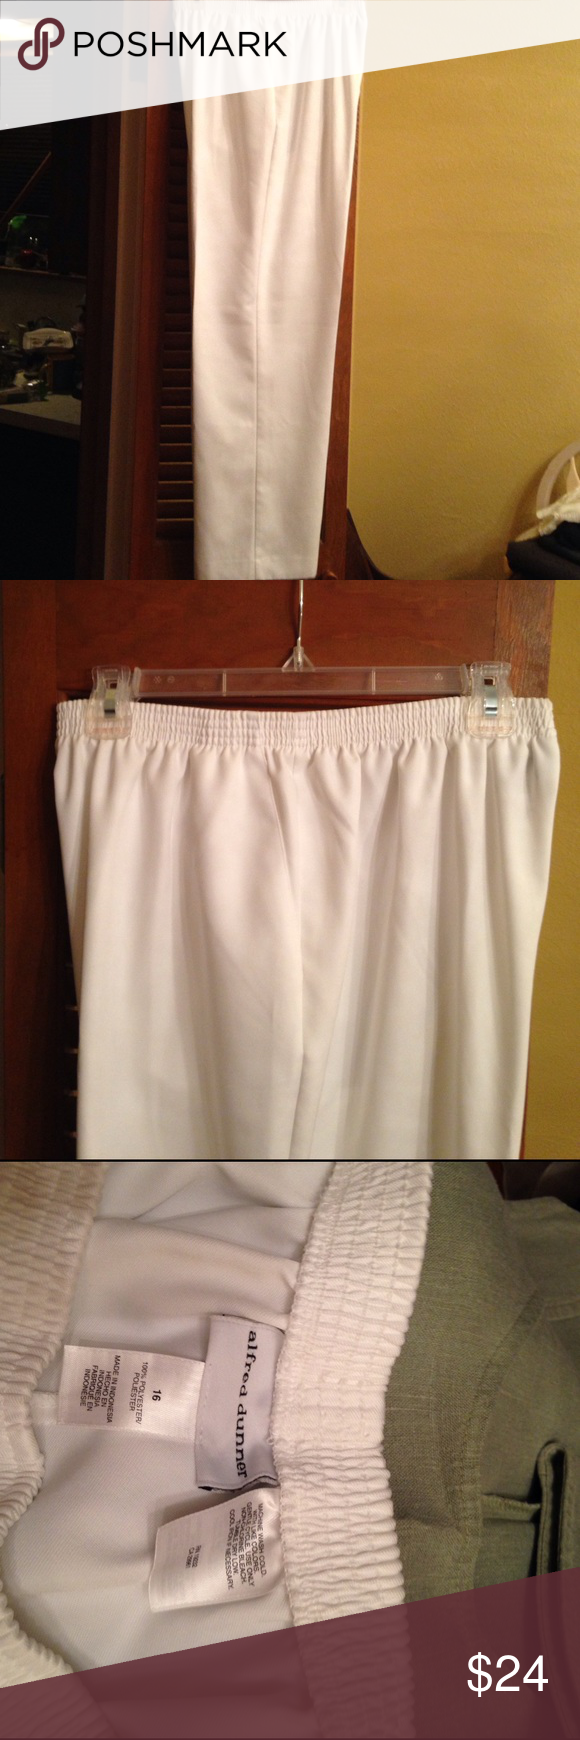 Alfred Dunner White slacks EUC lovely white slacks.  Size 16.  30 inseam.  100% polyester. Alfred Dunner Pants #whiteslacks Alfred Dunner White slacks EUC lovely white slacks.  Size 16.  30 inseam.  100% polyester. Alfred Dunner Pants #whiteslacks